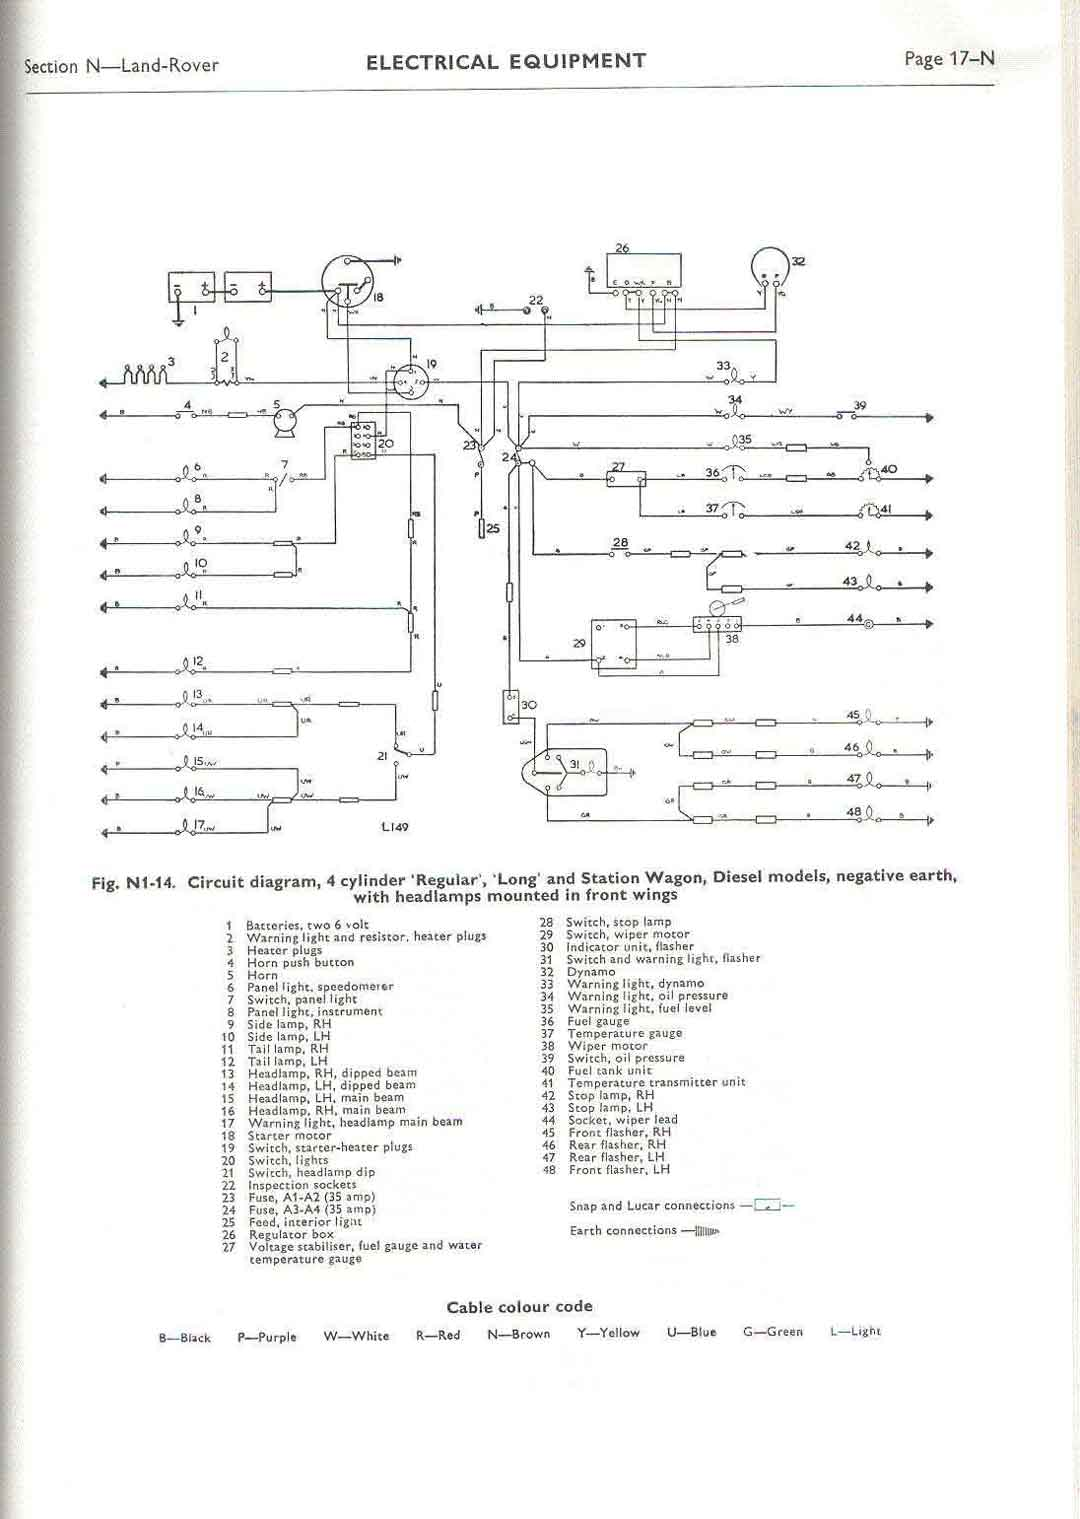 Rover Series Iii Wiring Great Design Of Diagram Schematic Parts List For Model Ei24mo45iba Another Diagrams U2022 Rh Benpaterson Co Uk Land